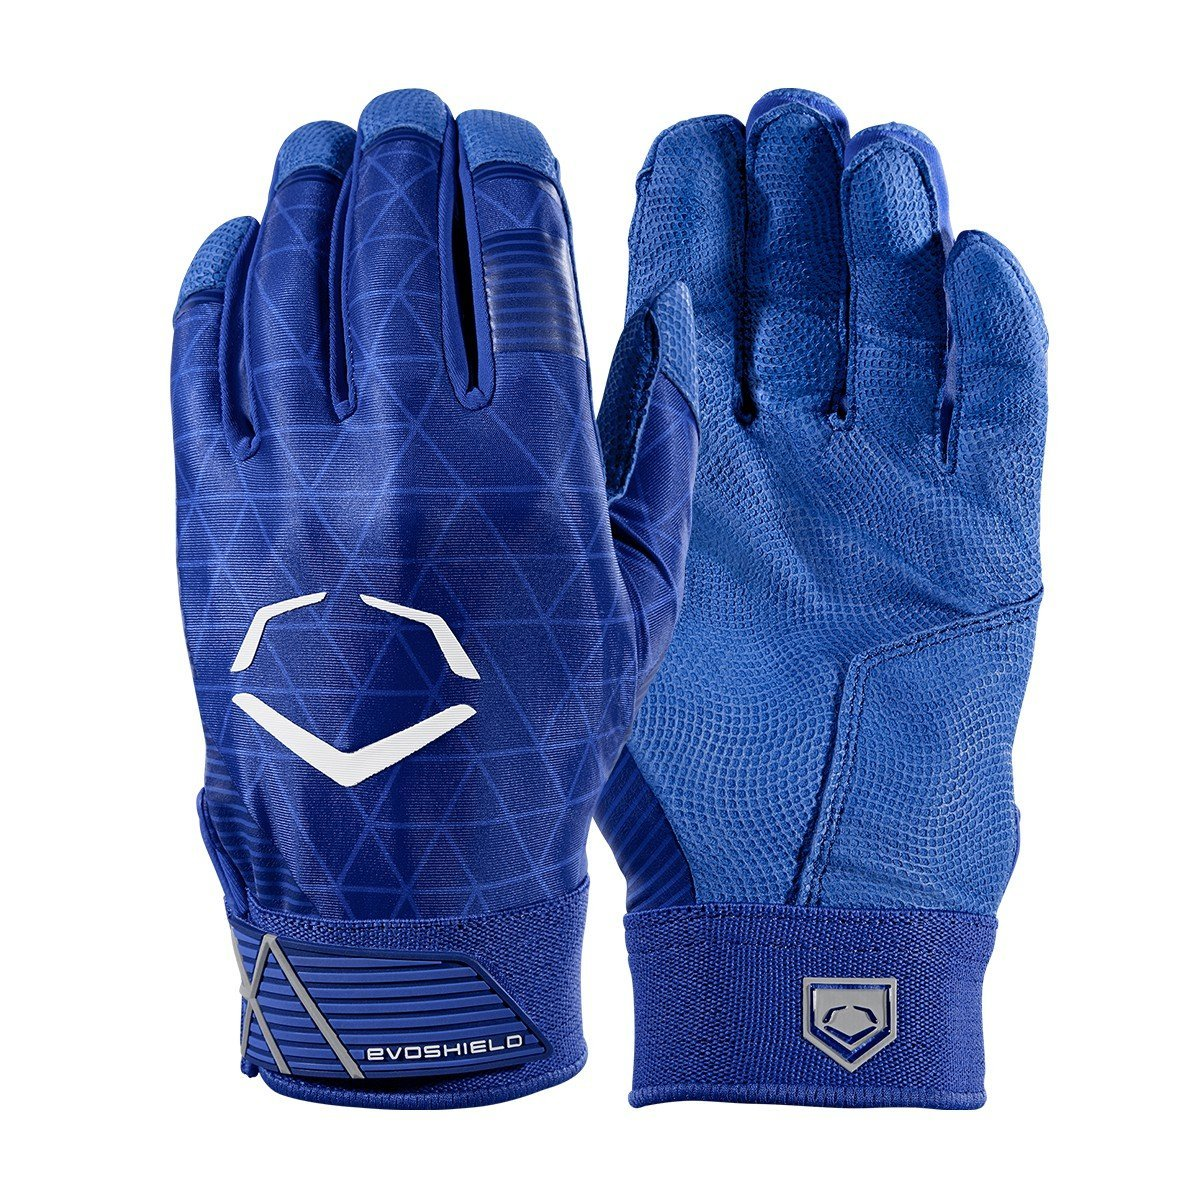 EvoShield Evocharge Batting Glove with Molding Shield Royal Large